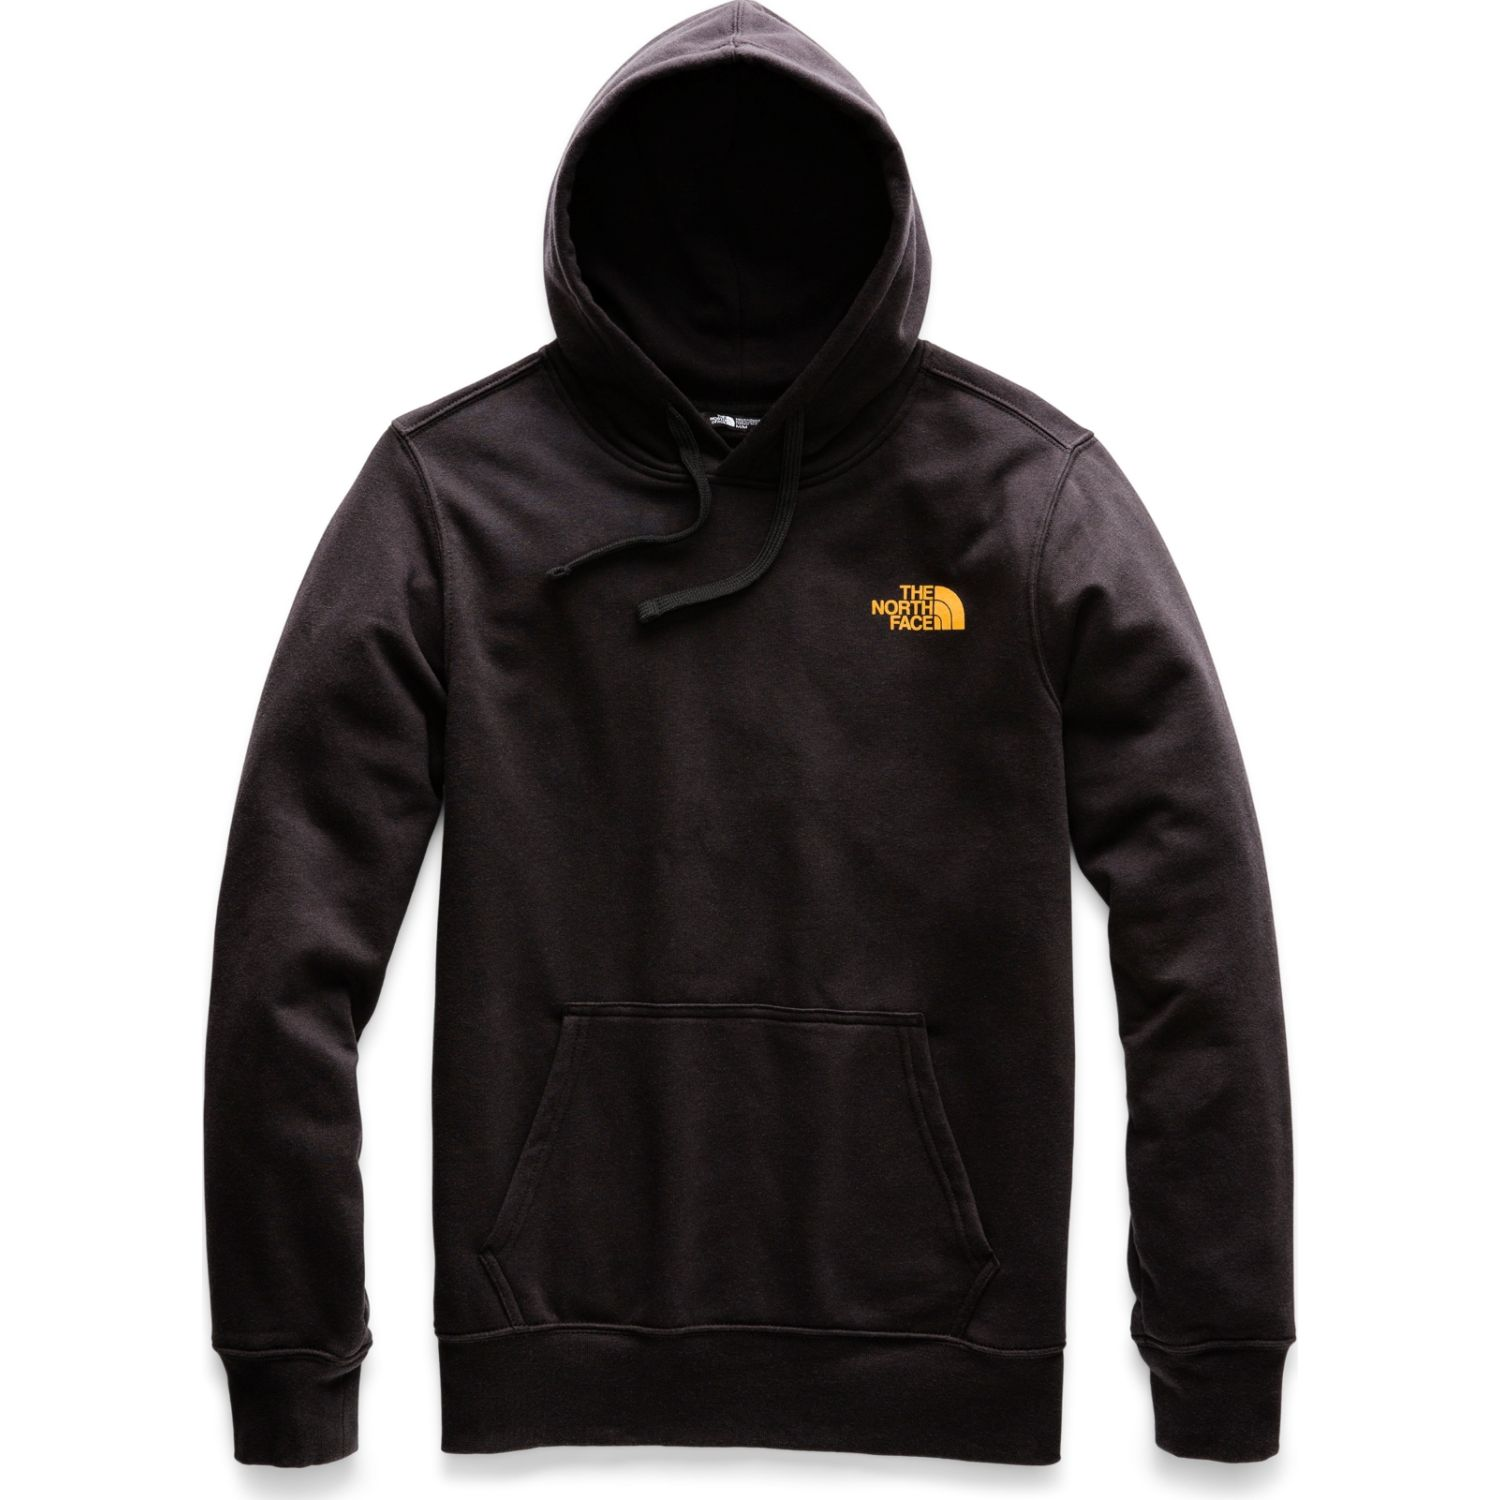 Deportivo de Hombre The North Face Negro m red box pullover hoodie